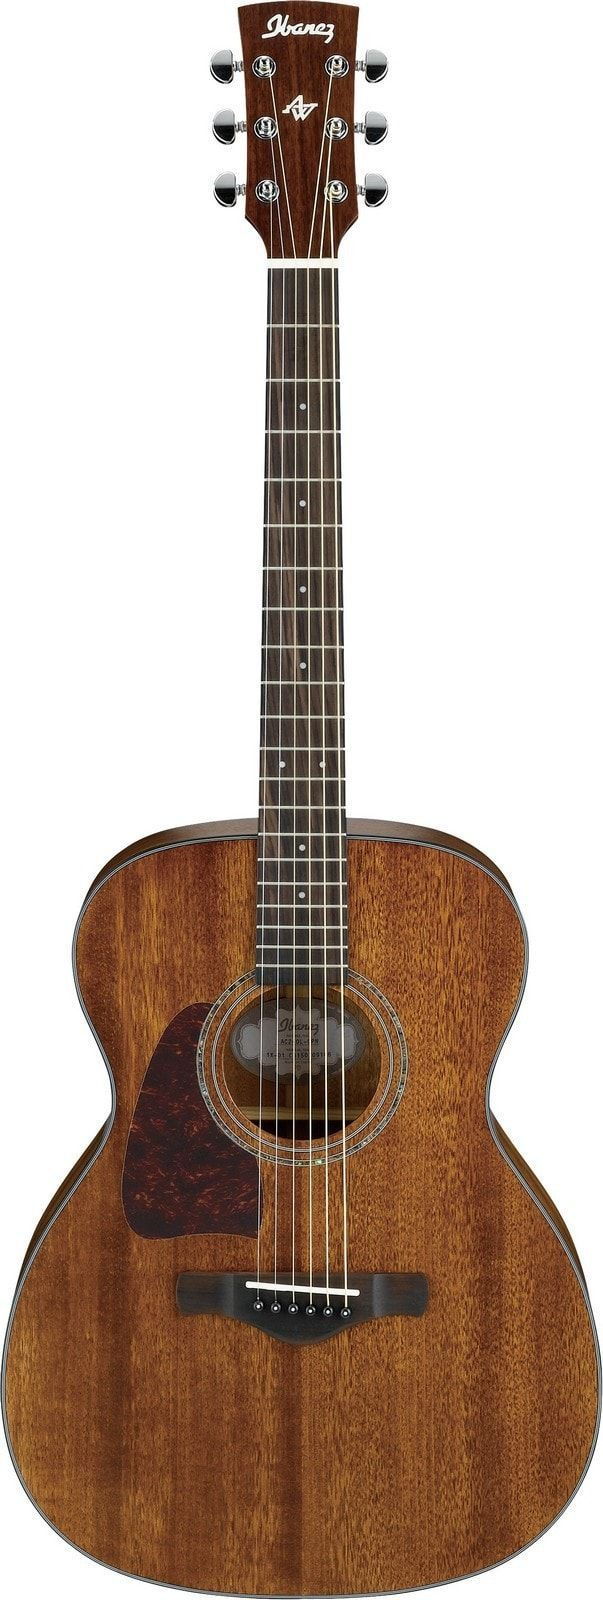 Ibanez AC240L The Ibanez Artwood series brings together the best of the old-world craftsmanship and modern techniques to create an acoustic guitar that sounds great, but more importantly, is very affo